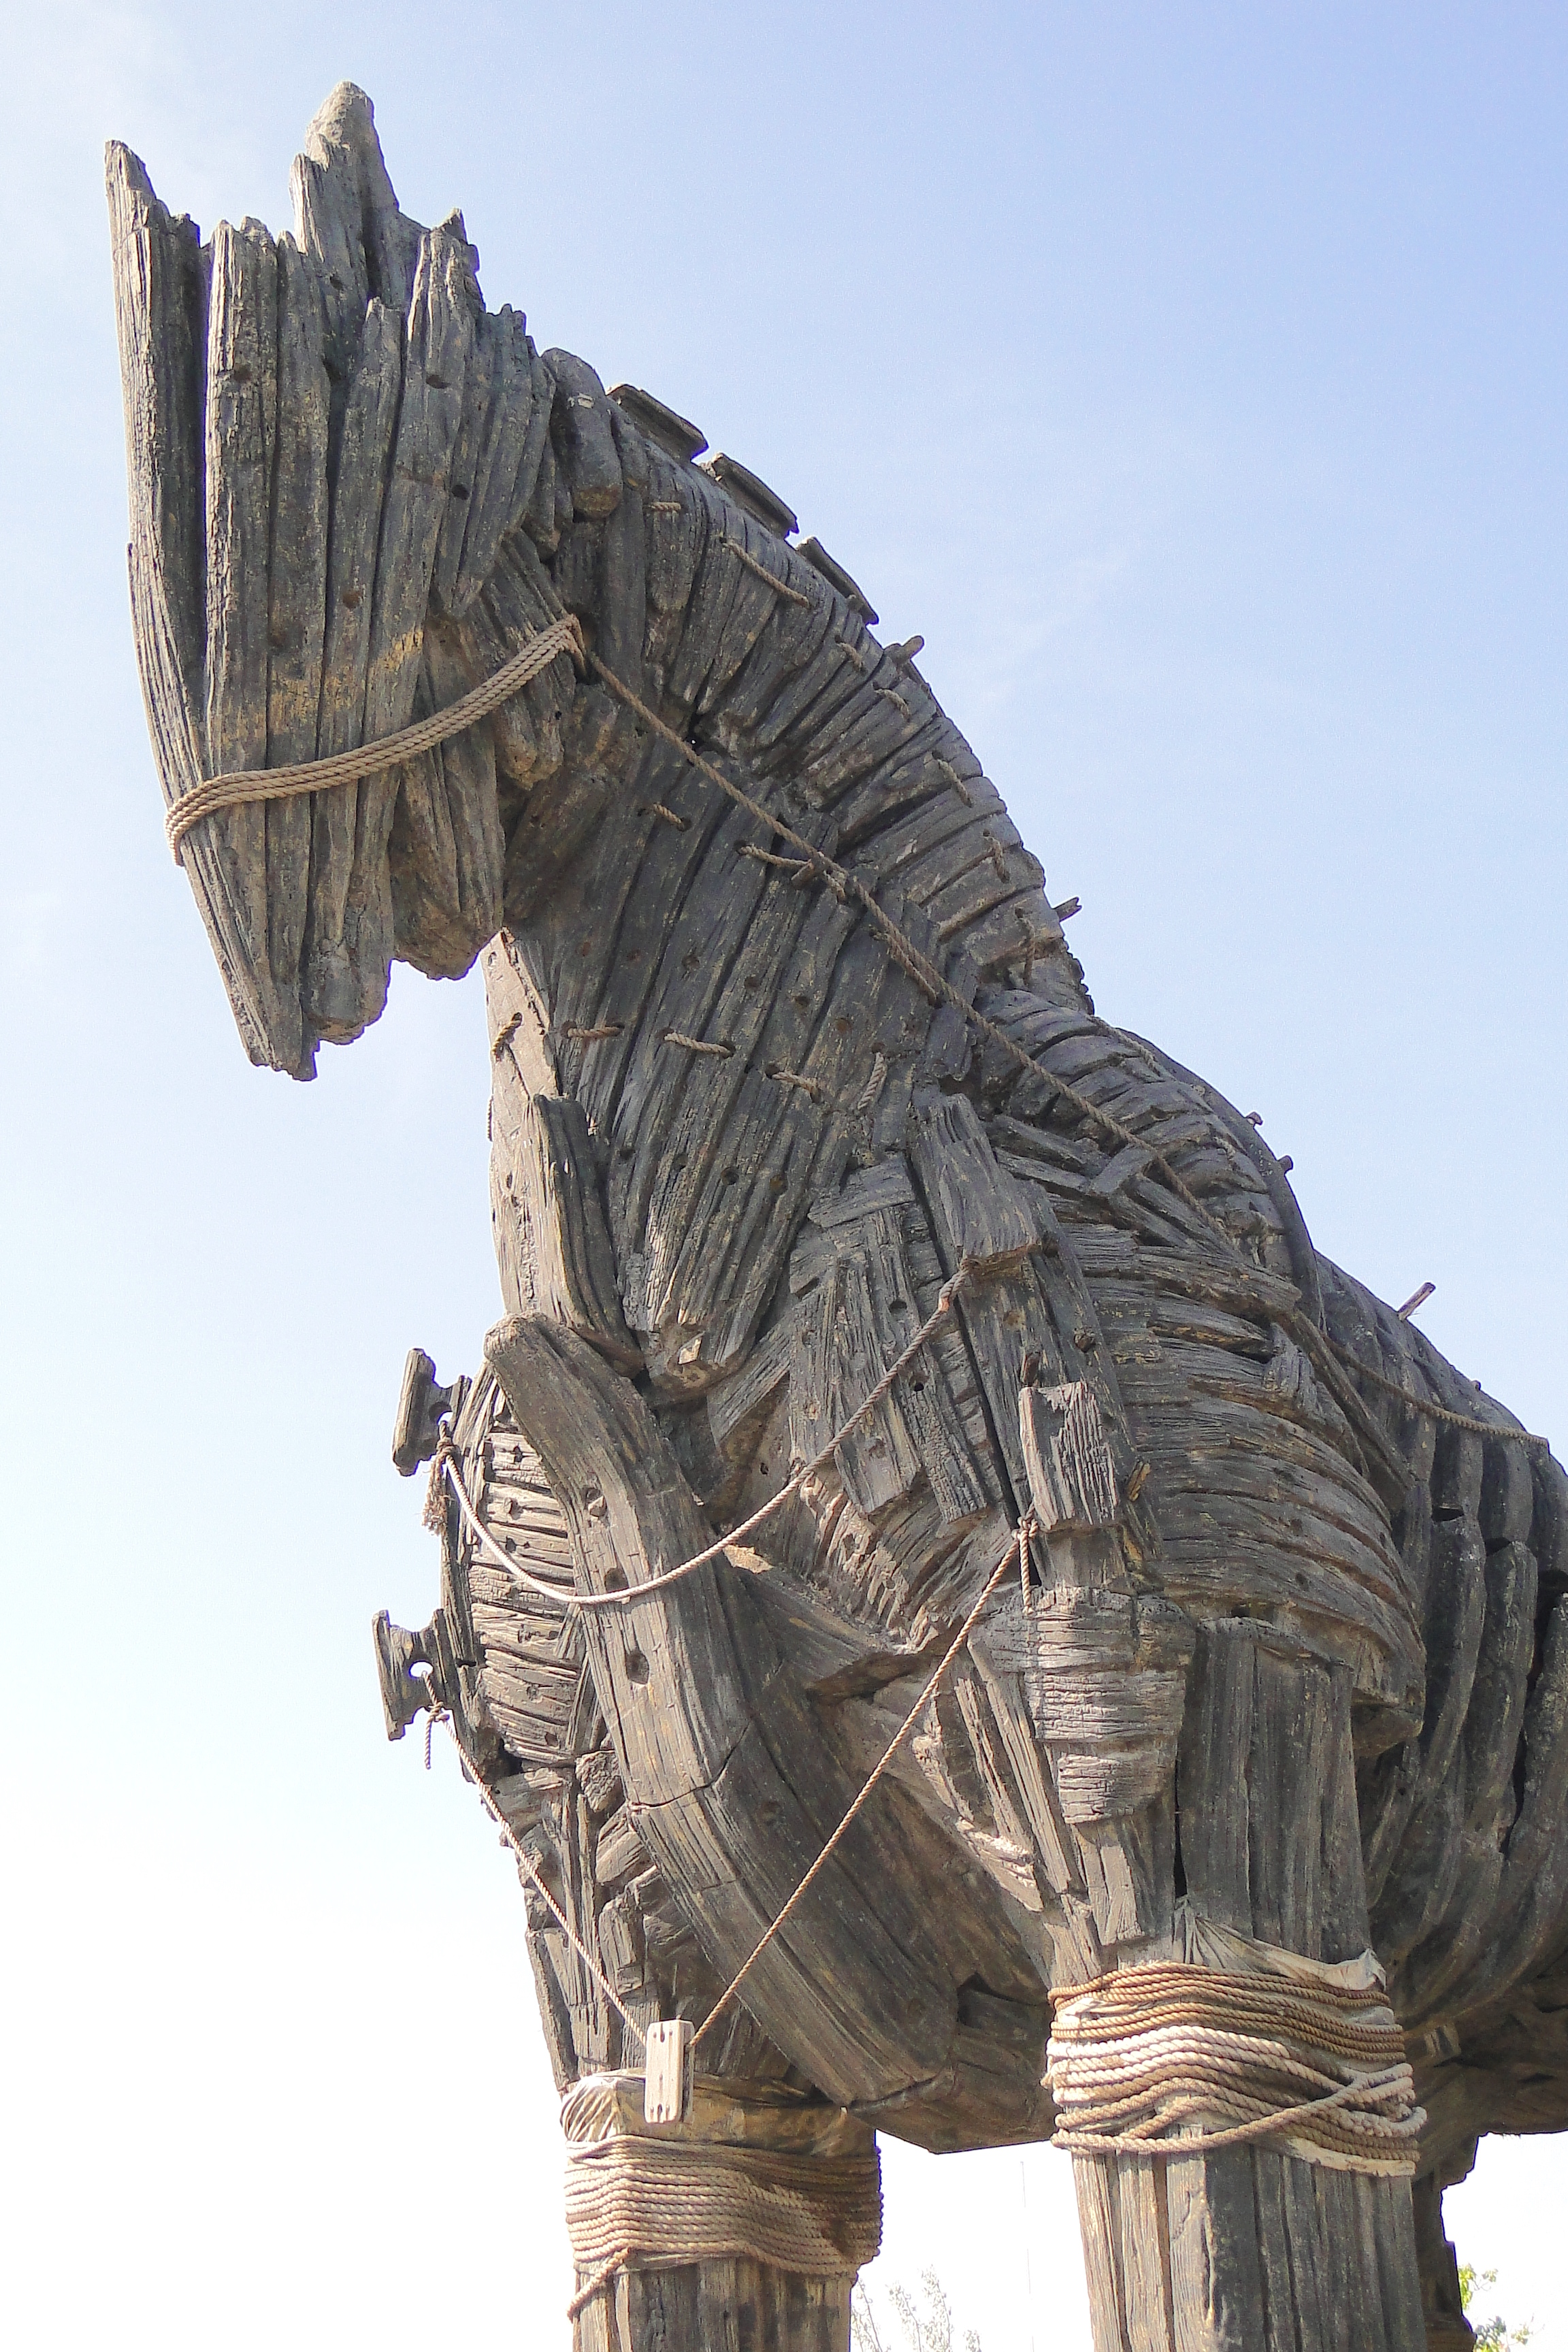 Replica_of_Trojan_Horse_-_Canakkale_Waterfront_-_Dardanelles_-_Turkey_(5747677790) 2